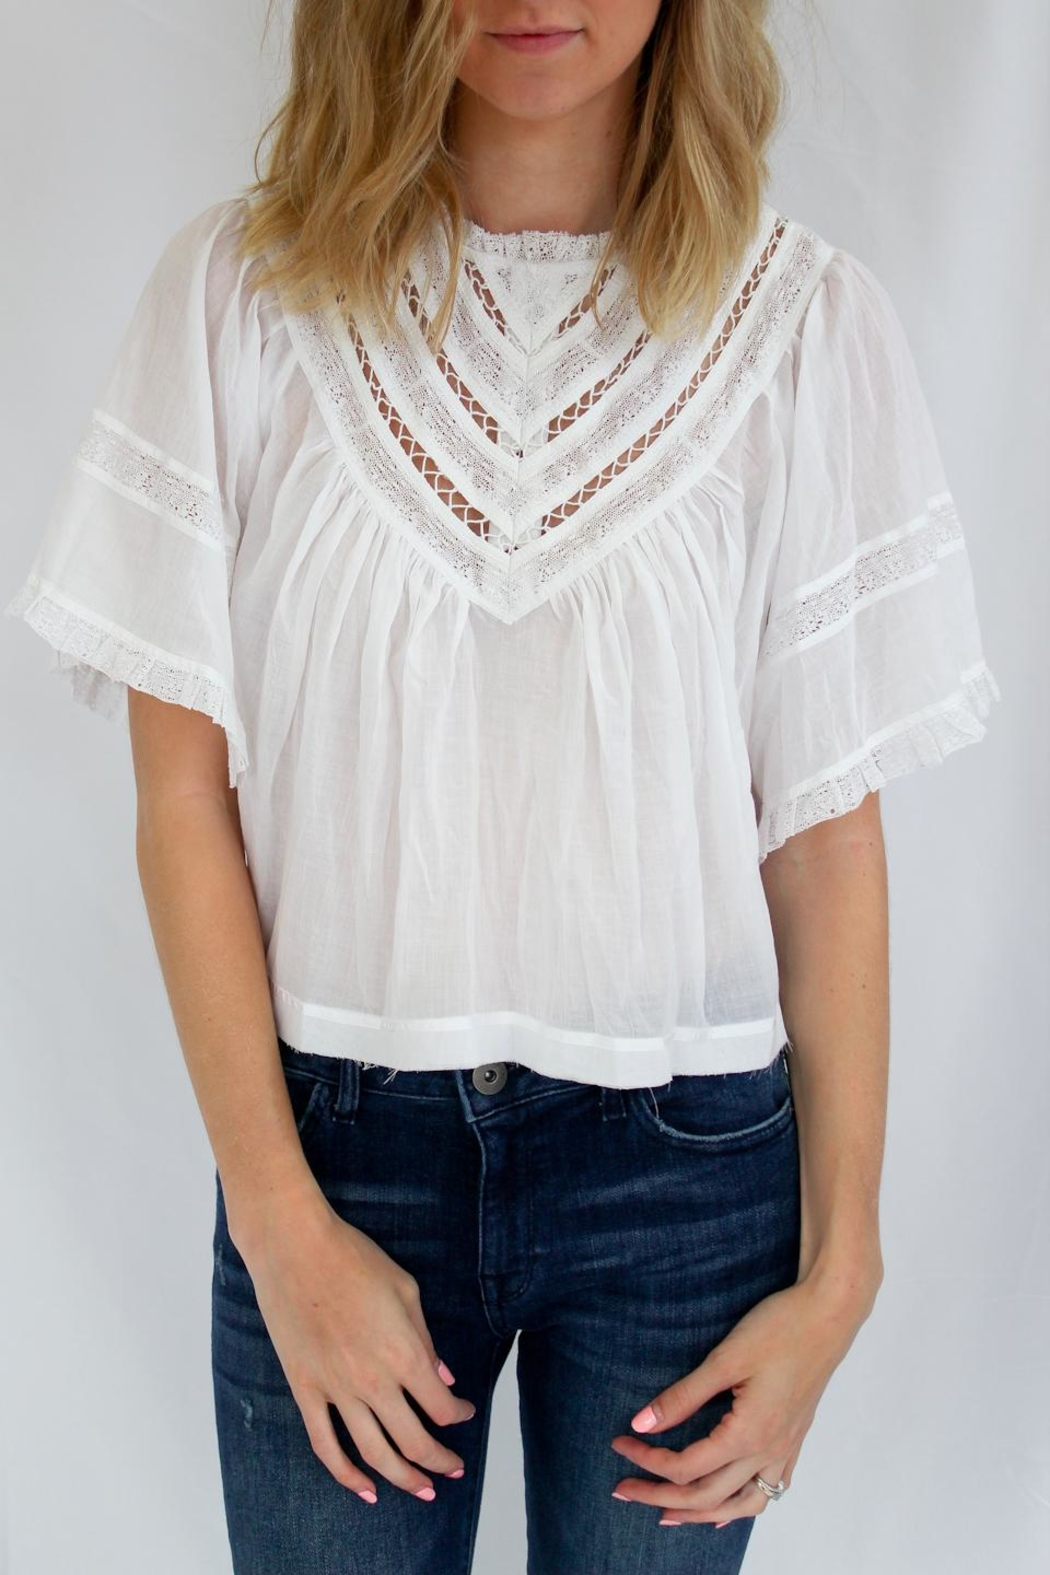 Free People White Summer Top - Front Cropped Image